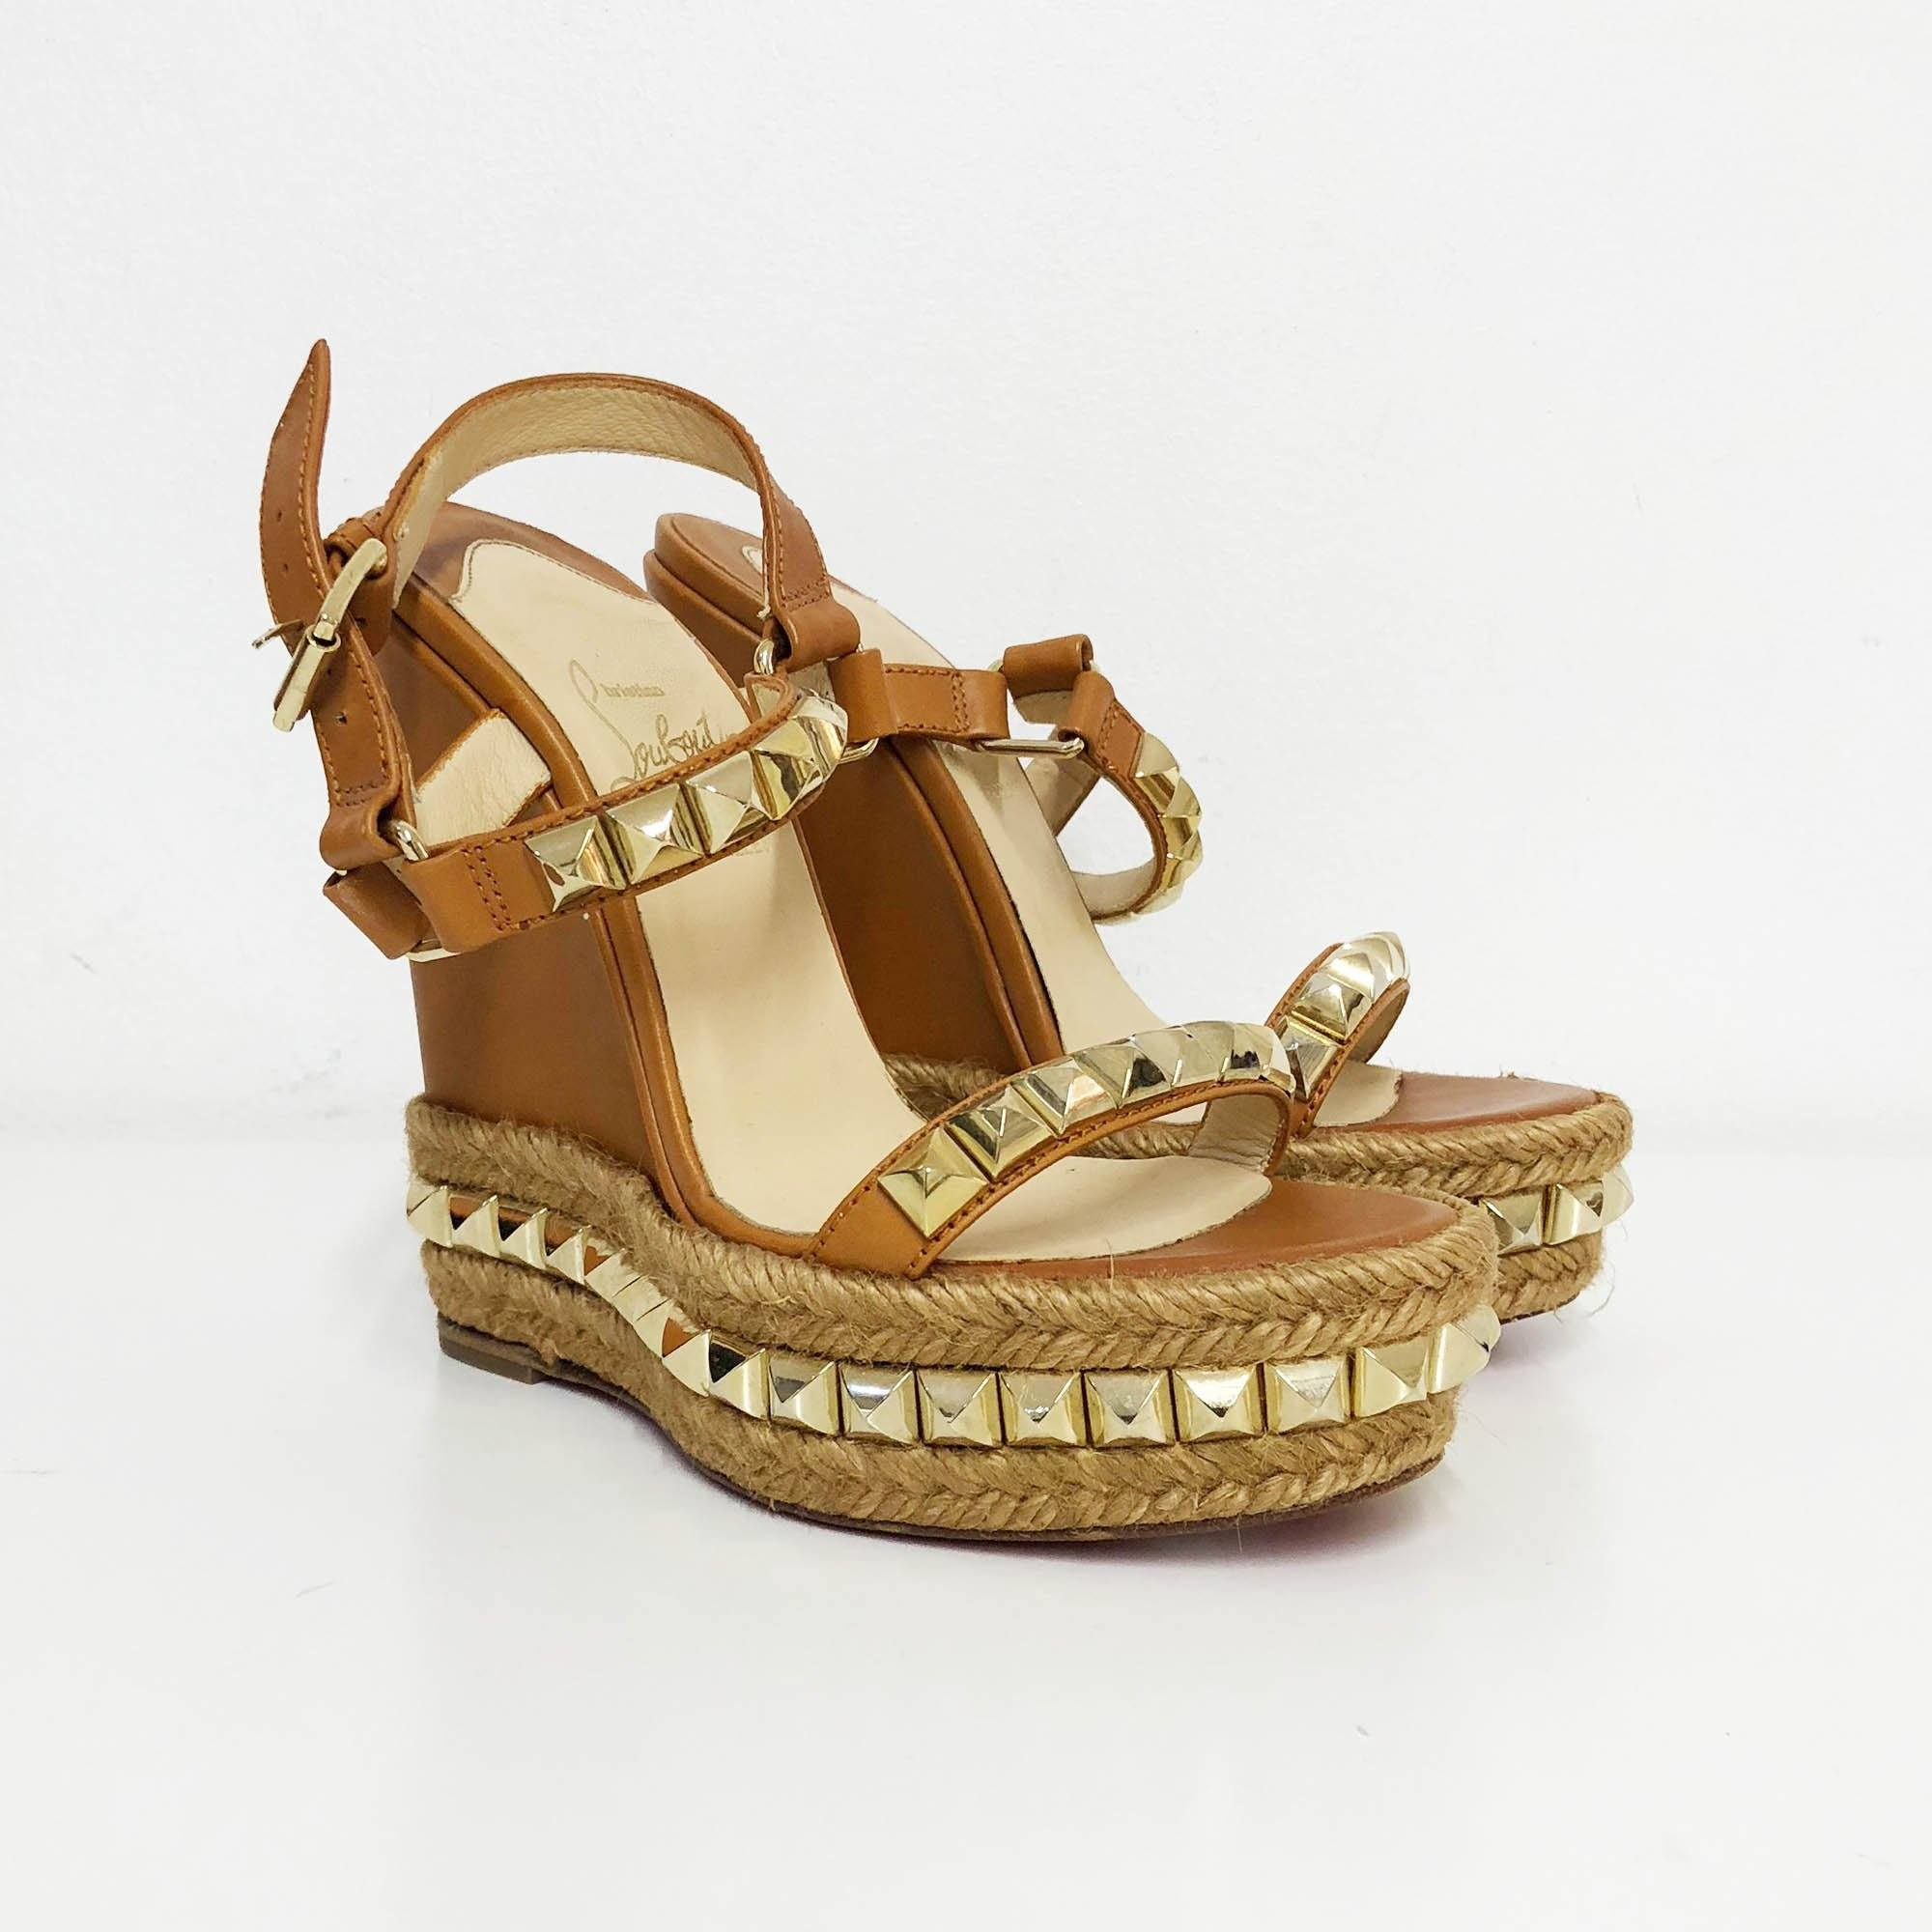 ad8870b4976 coupon code louboutin studded wedges df208 89299